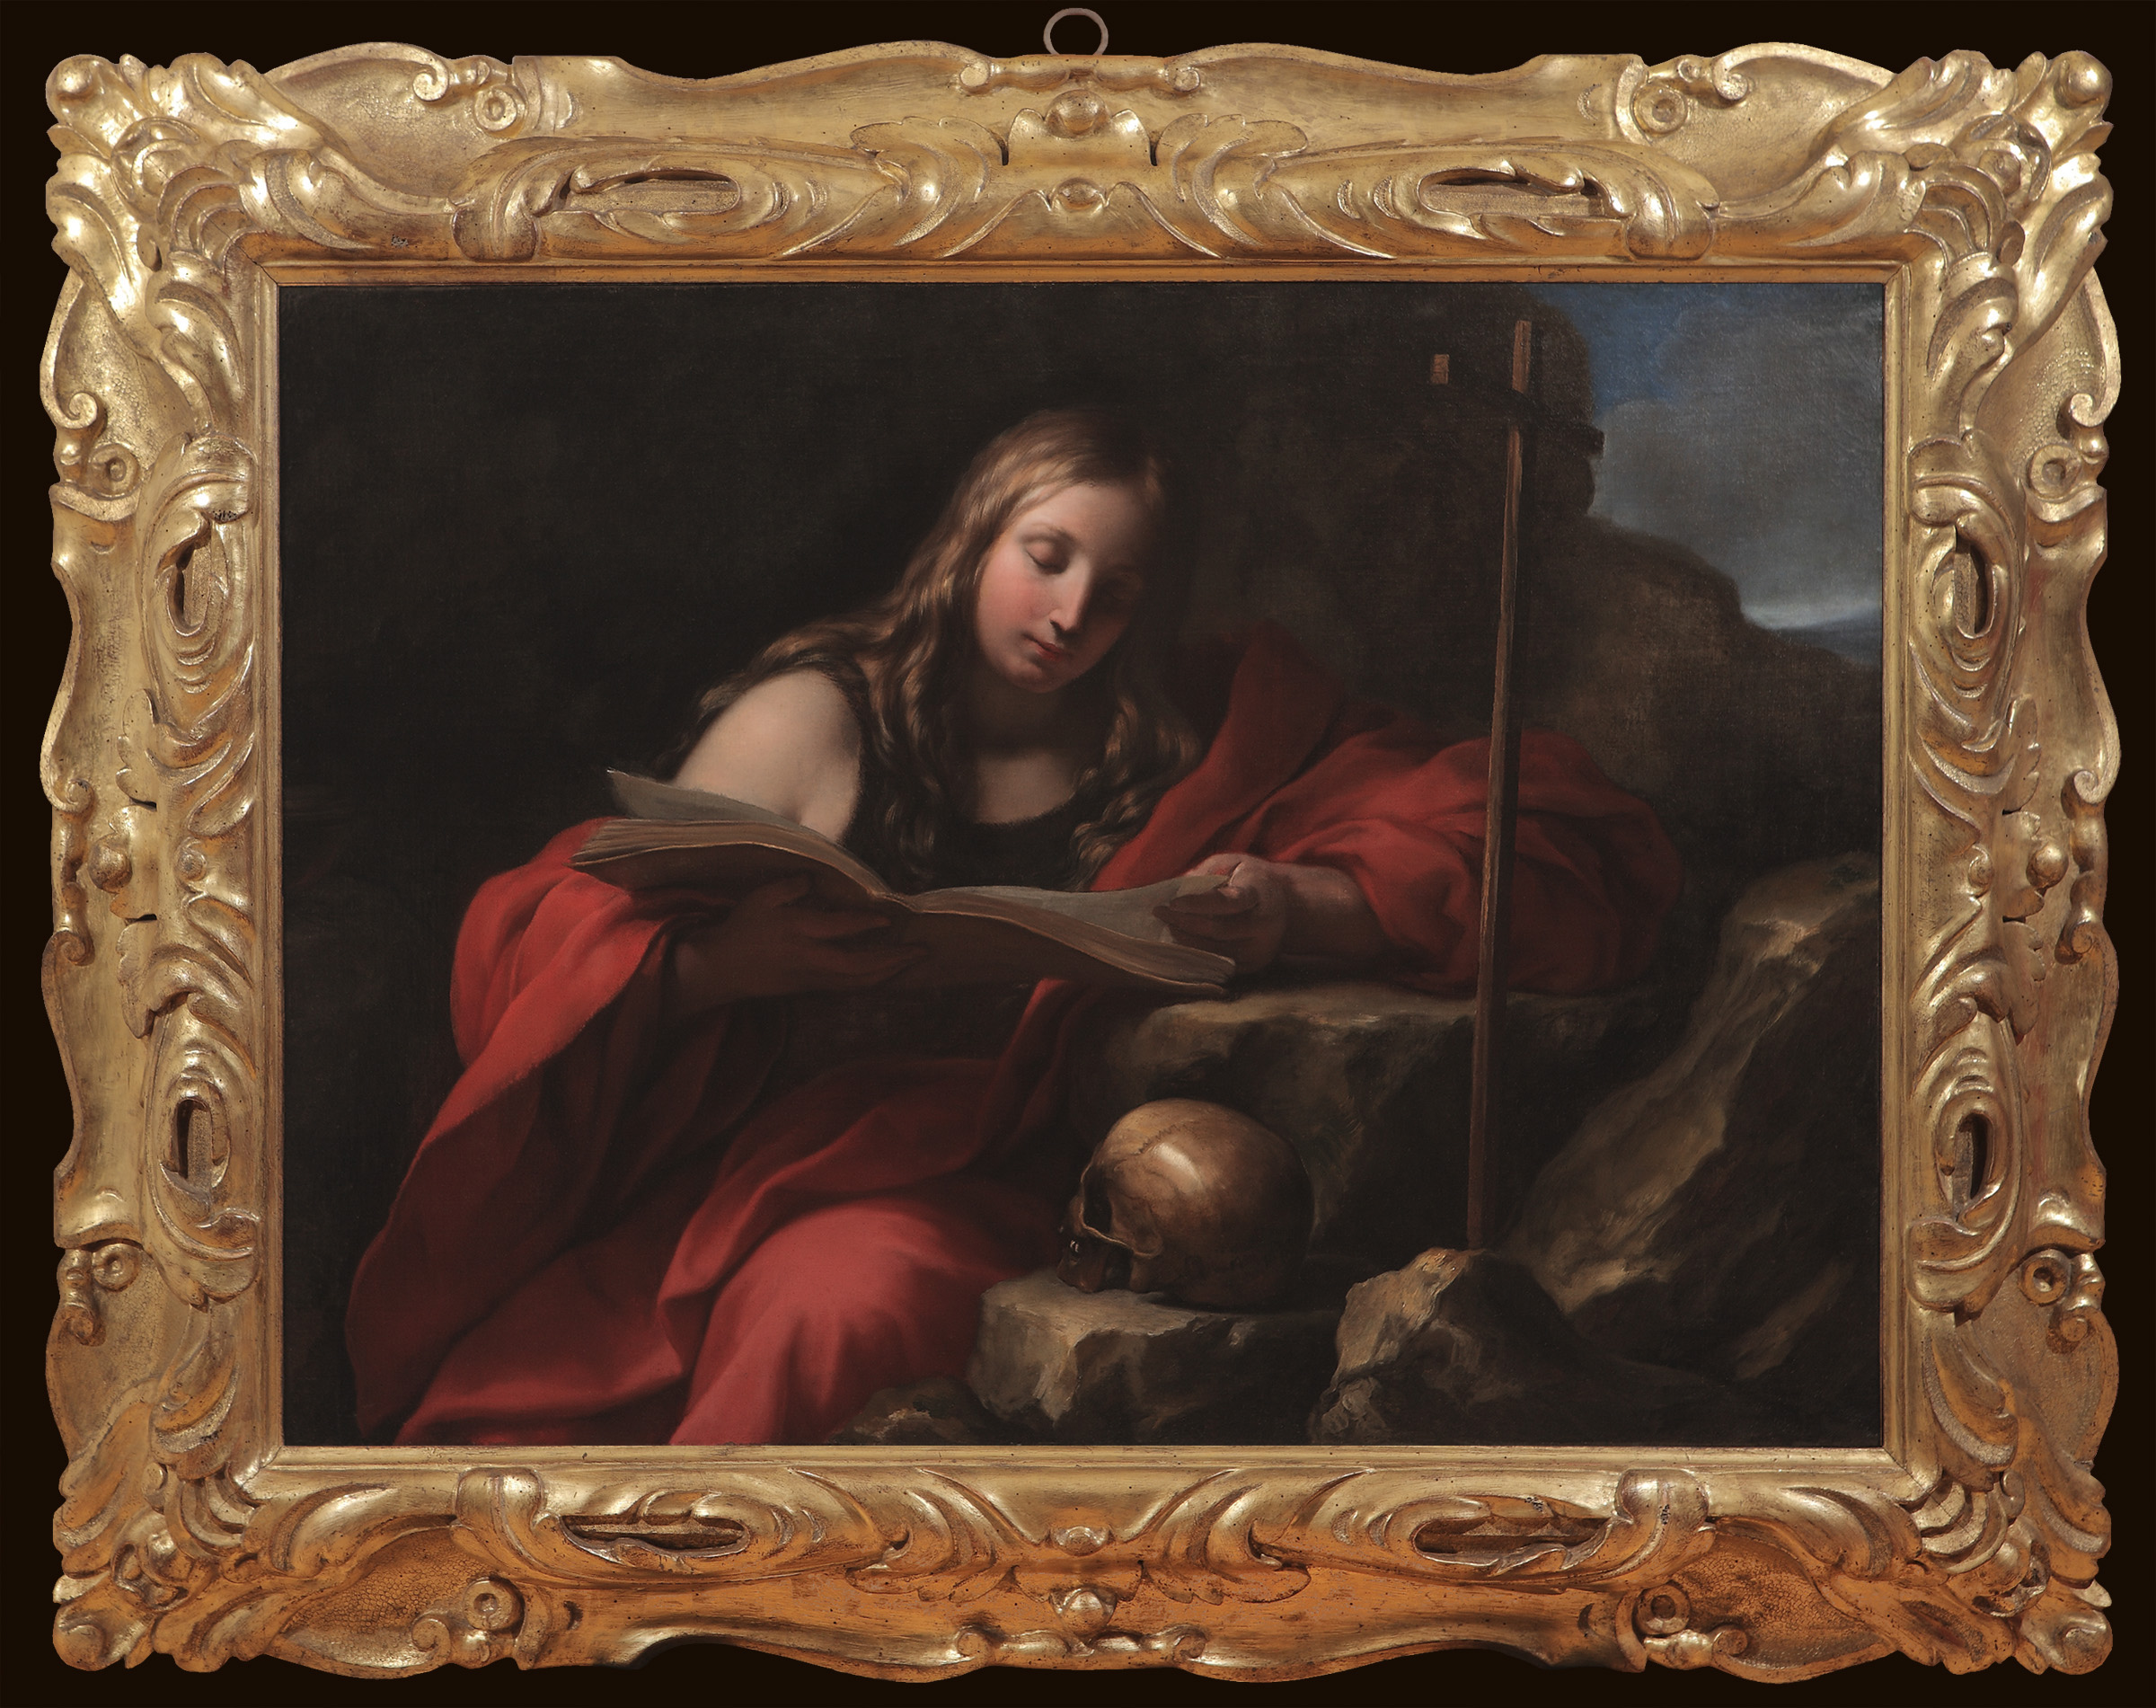 ONORIO MARINARI   (Florence, 1627-1716)     The Penitent Magdalene   Oil on canvas, 35 x 47 ¾ inches (89 x 121 cm)